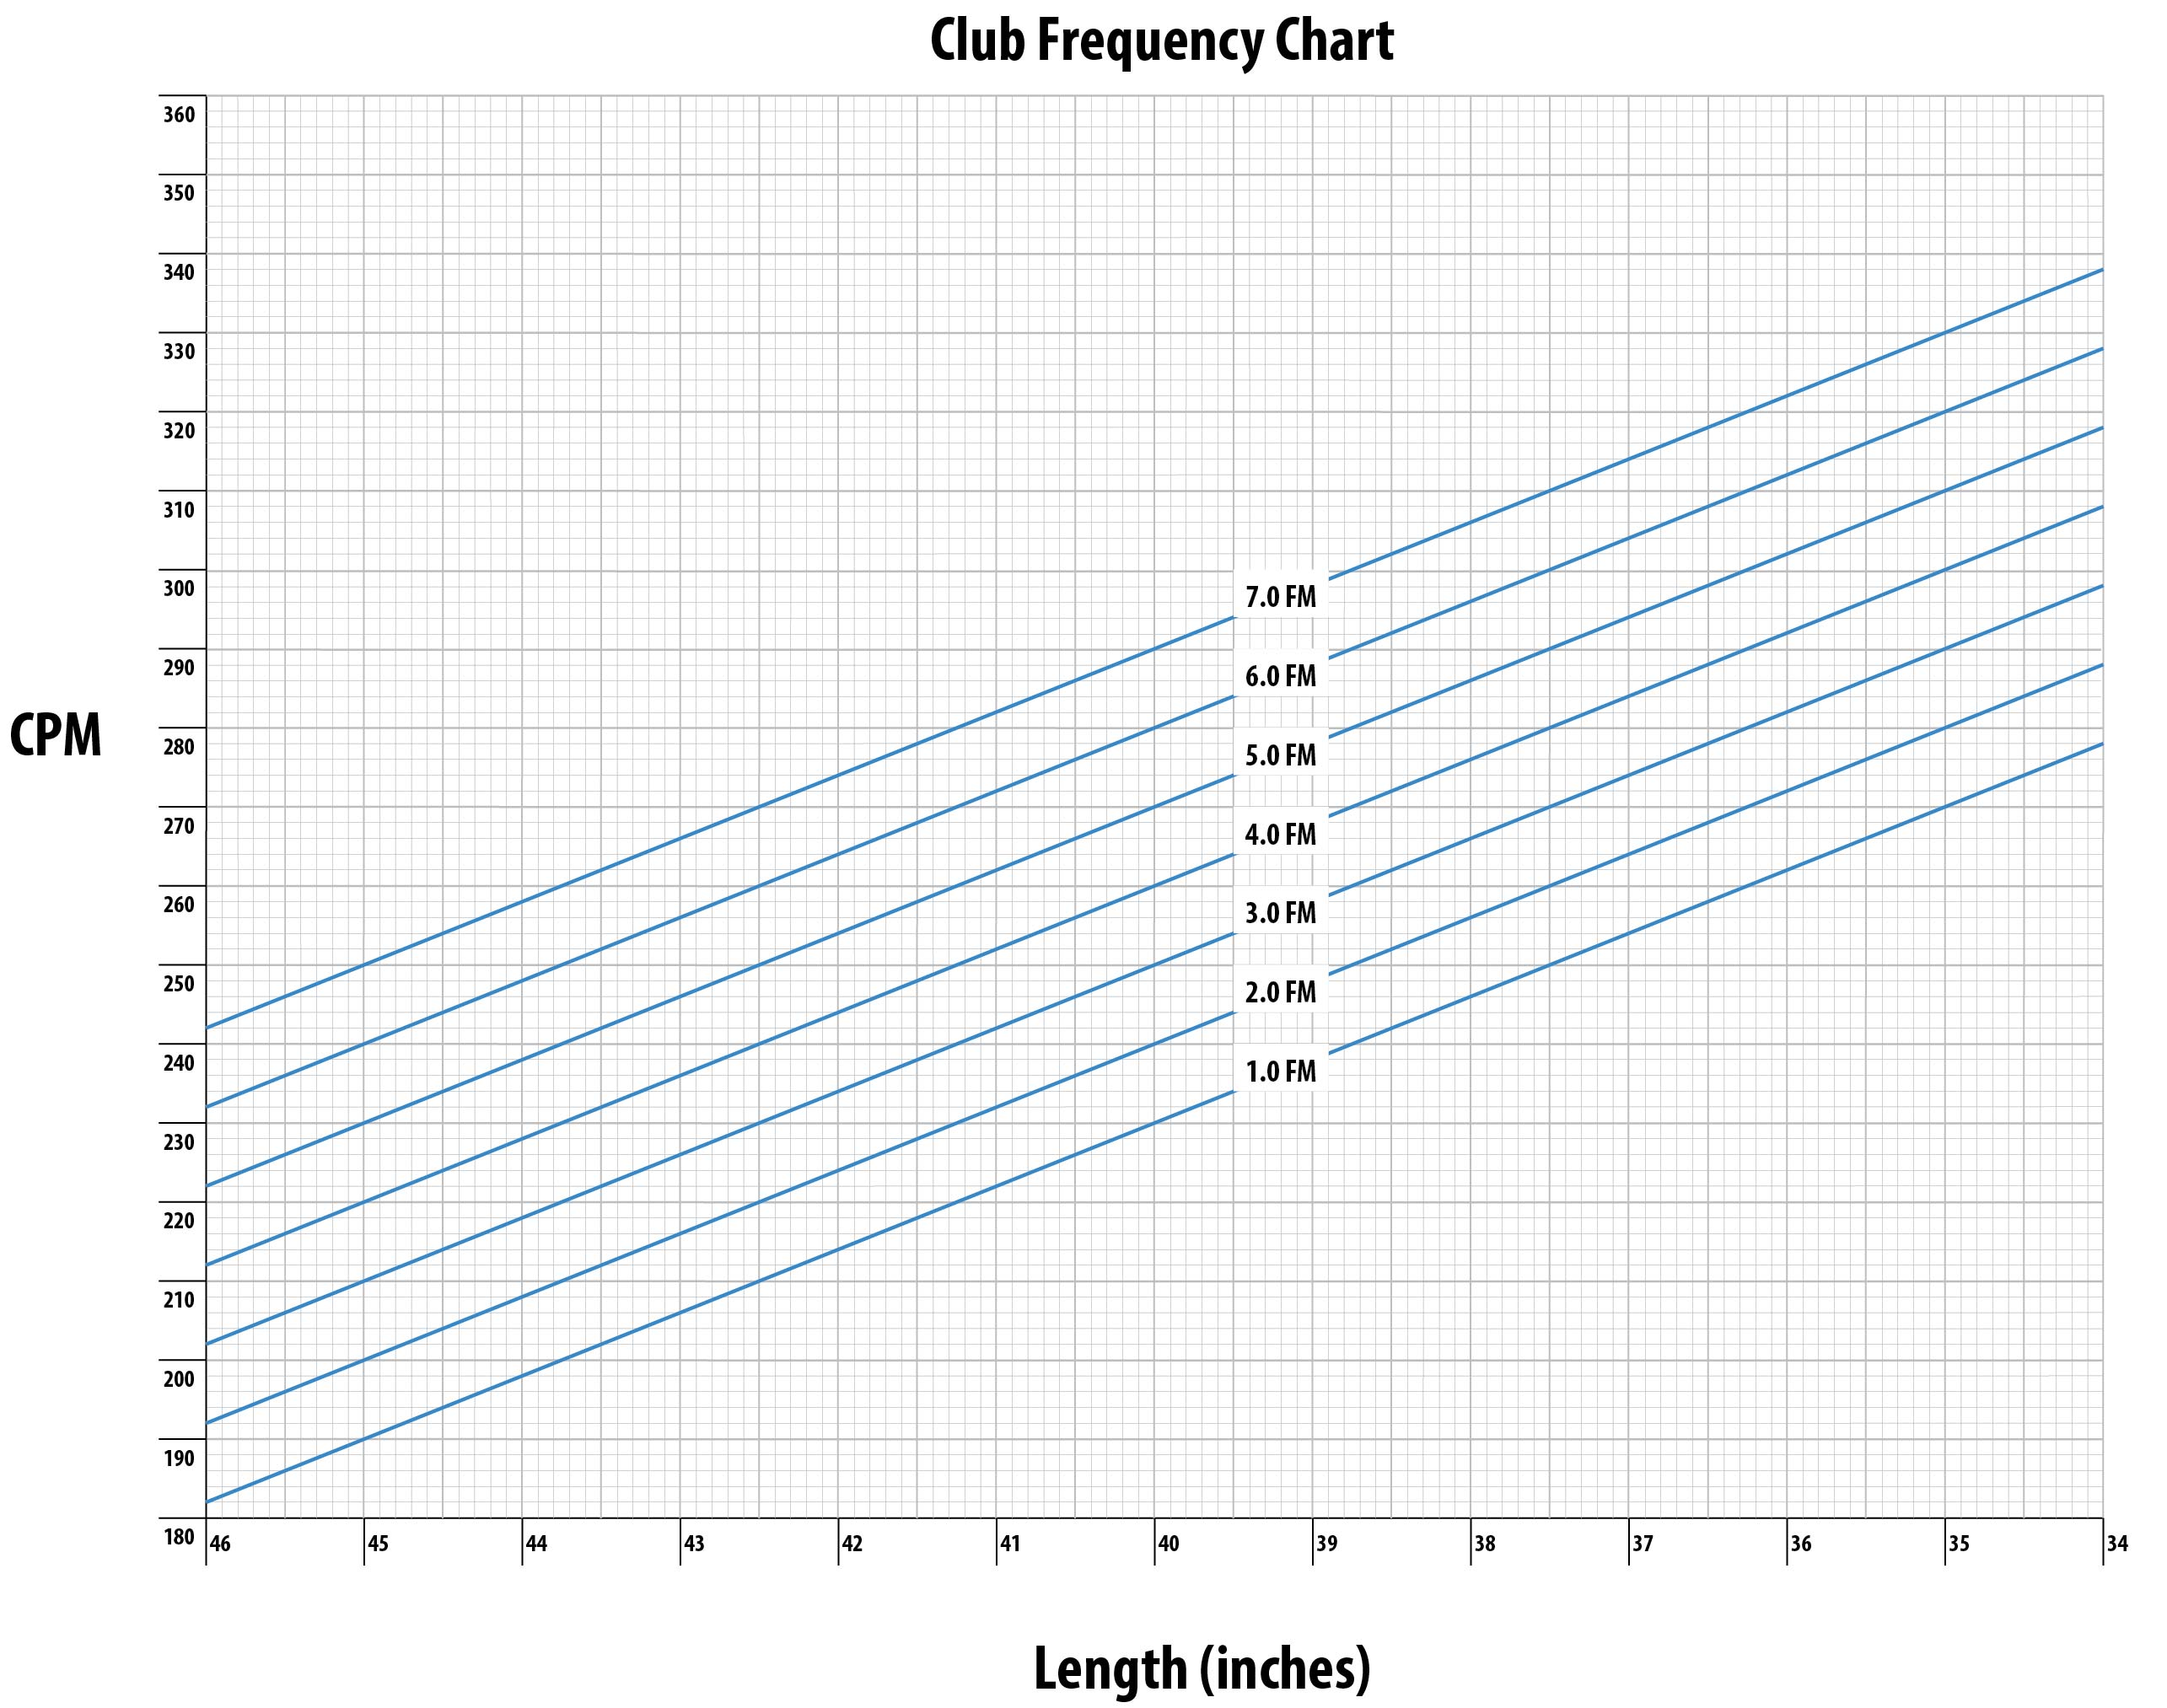 Club Frequency Chart